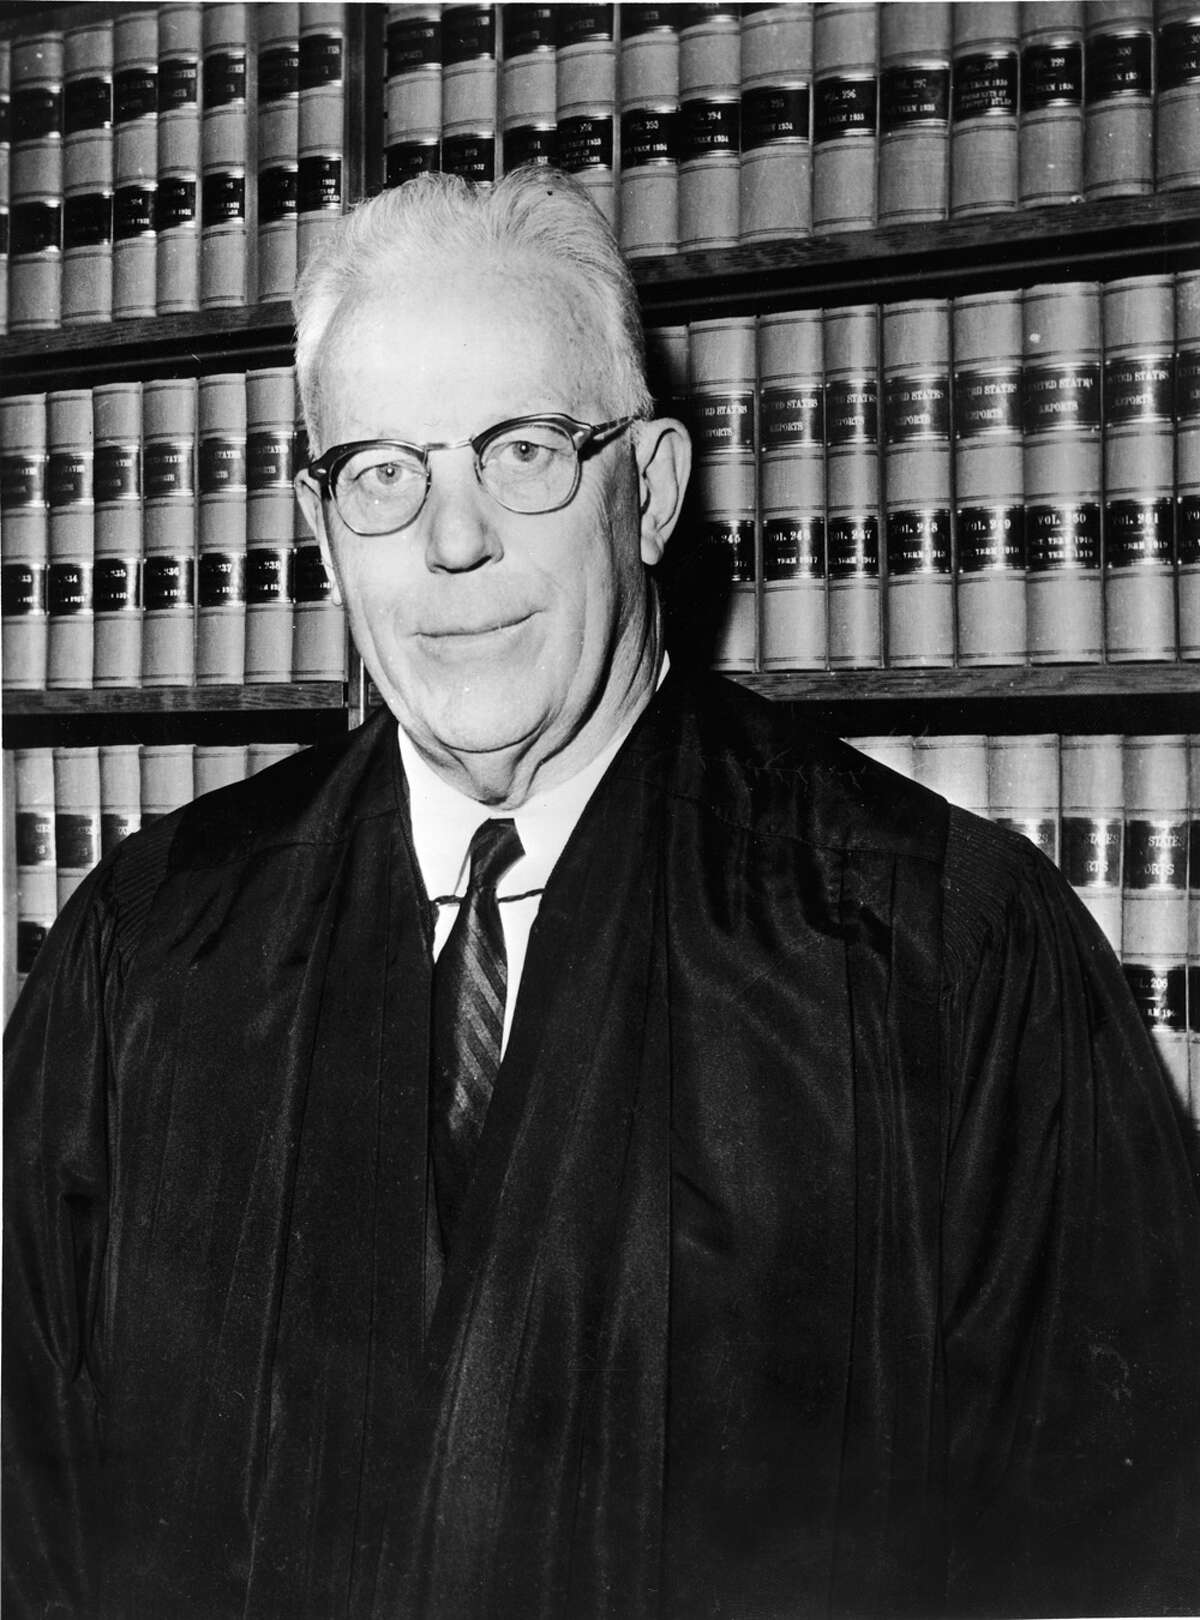 ... Earl Warren, the 14th chief justice of the U.S. Supreme Court, who served from 1953 to 1969. Before that, he was the governor of California.